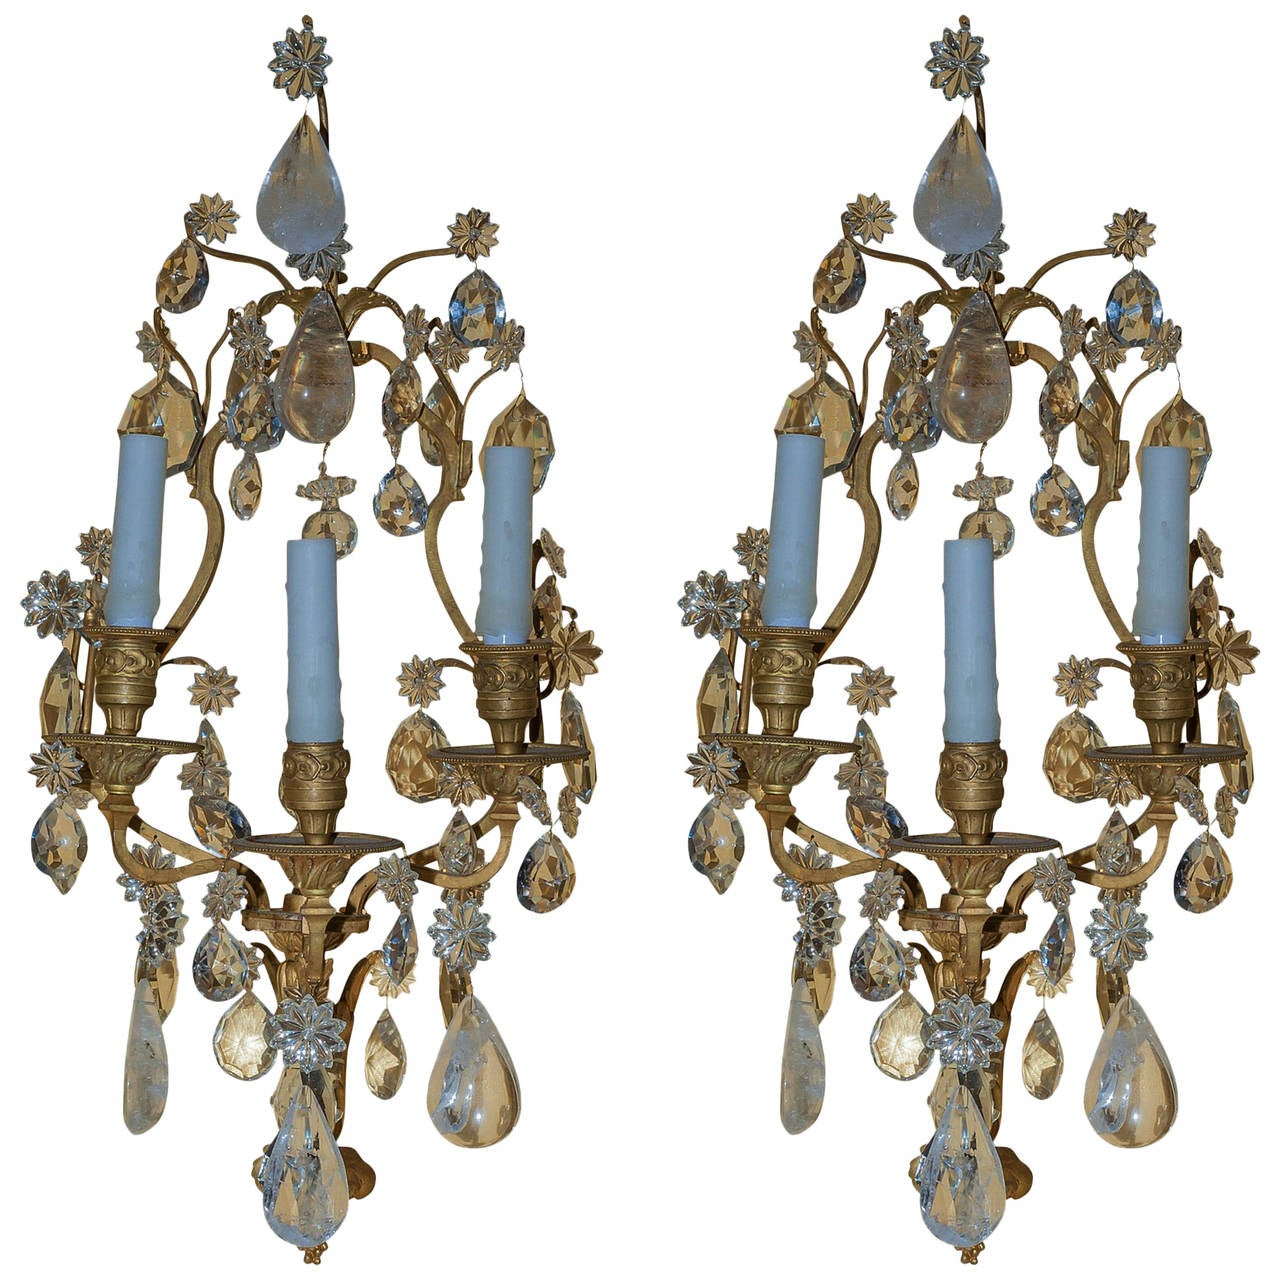 Pair of Rock Crystal and Gilt Bronze Three-Arm Wall Light Sconces at 1stdibs